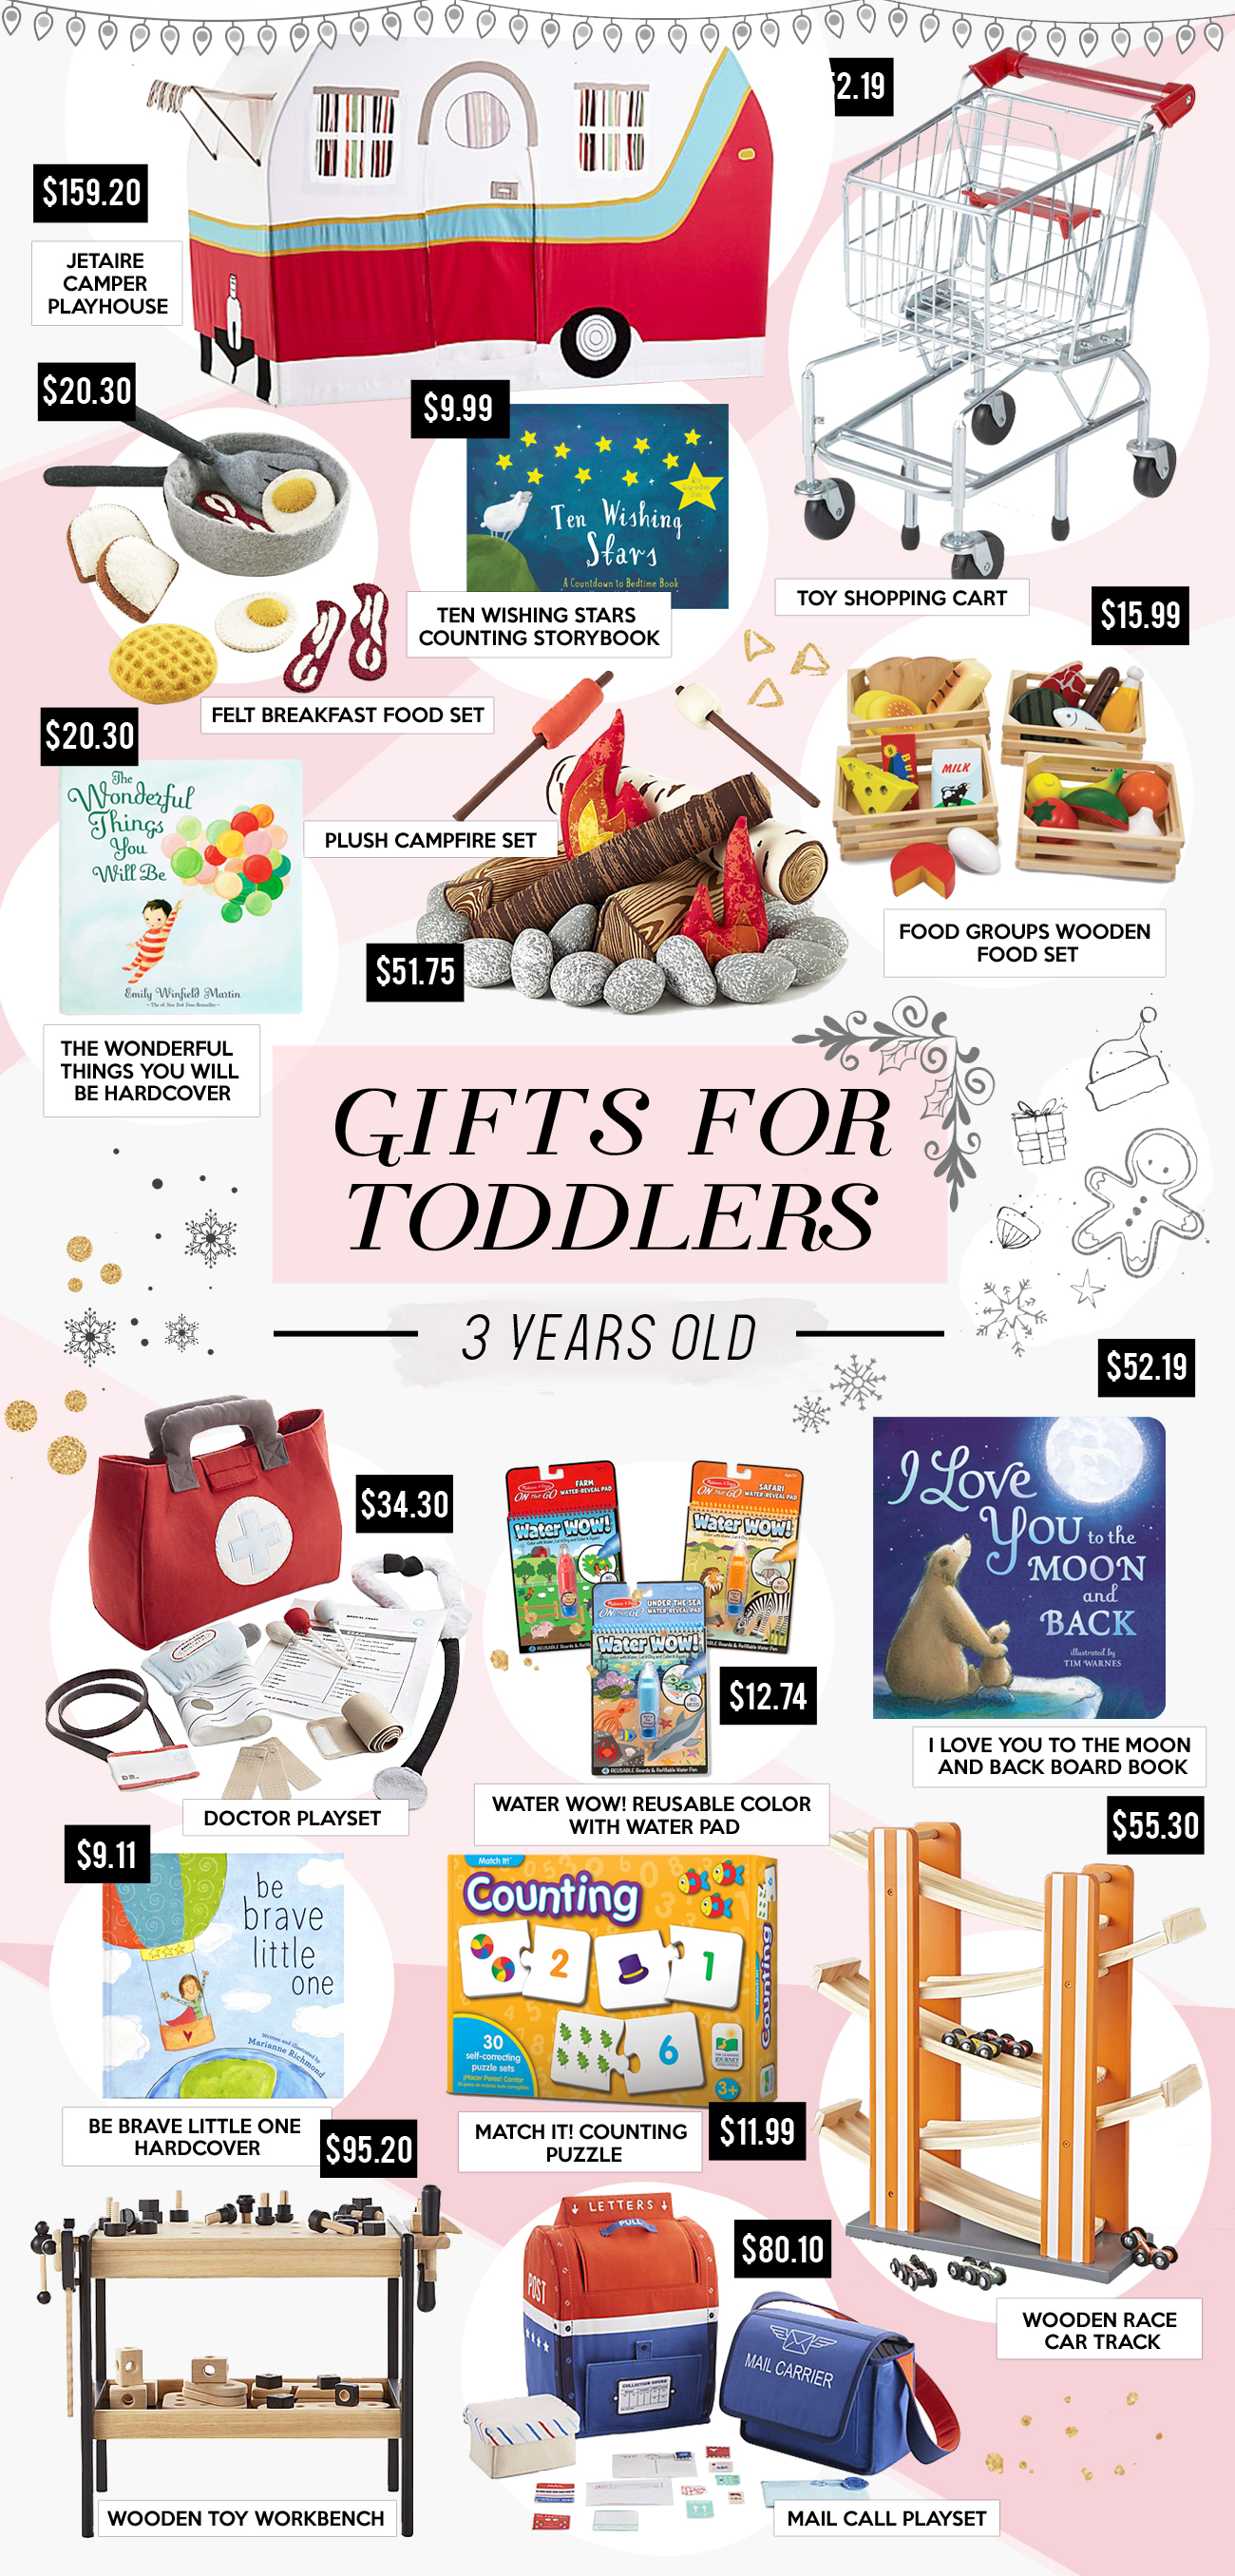 Gift Guides - 3 years old - page3